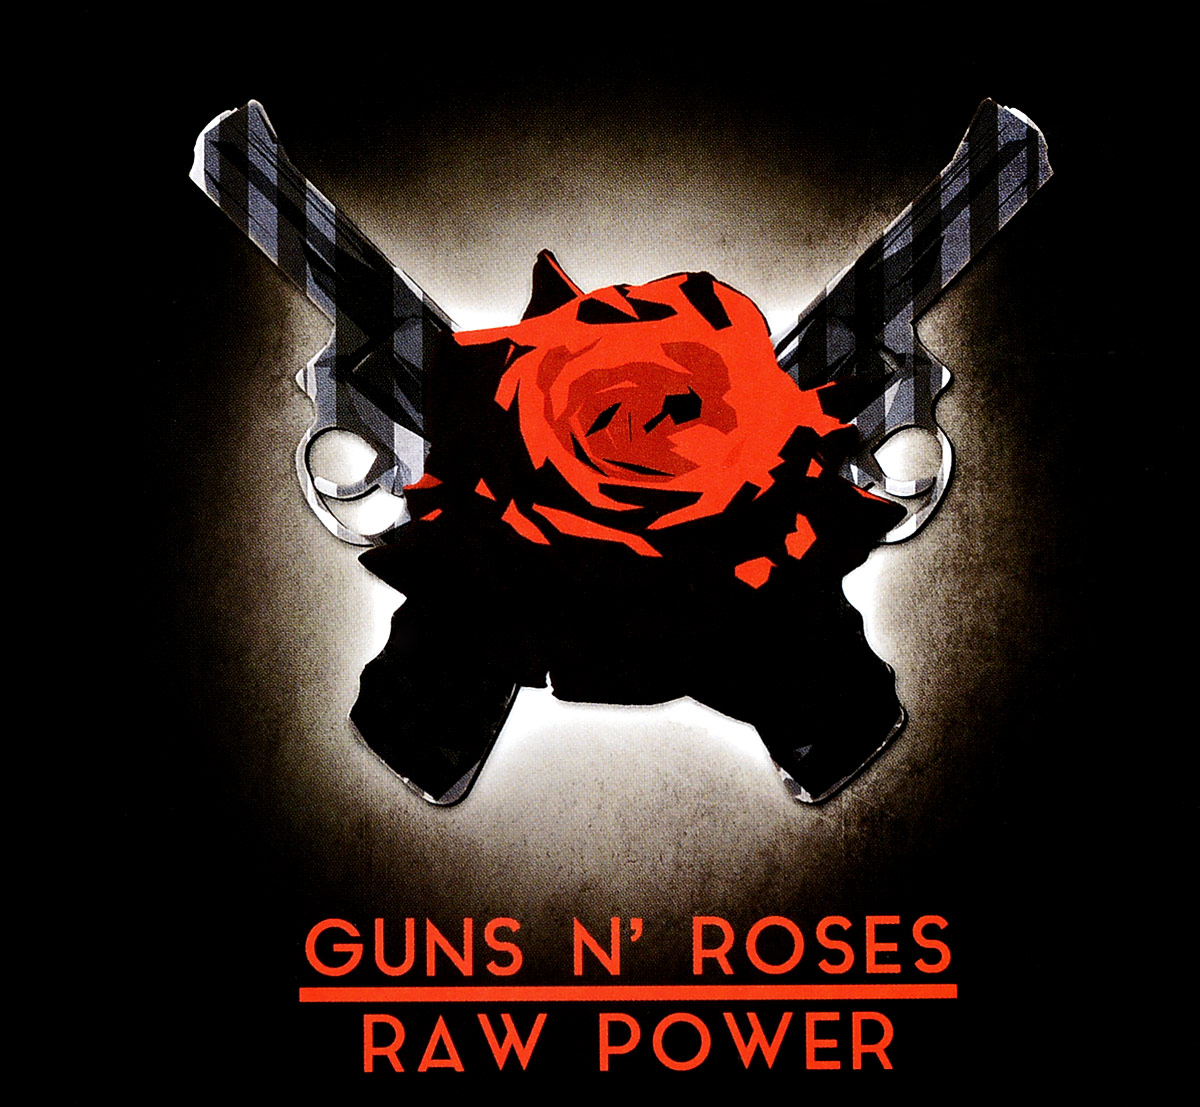 Guns N' Roses: Raw Power (DVD + 2 CD) платье finn flare цвет серо голубой s17 14020 105 размер l 48